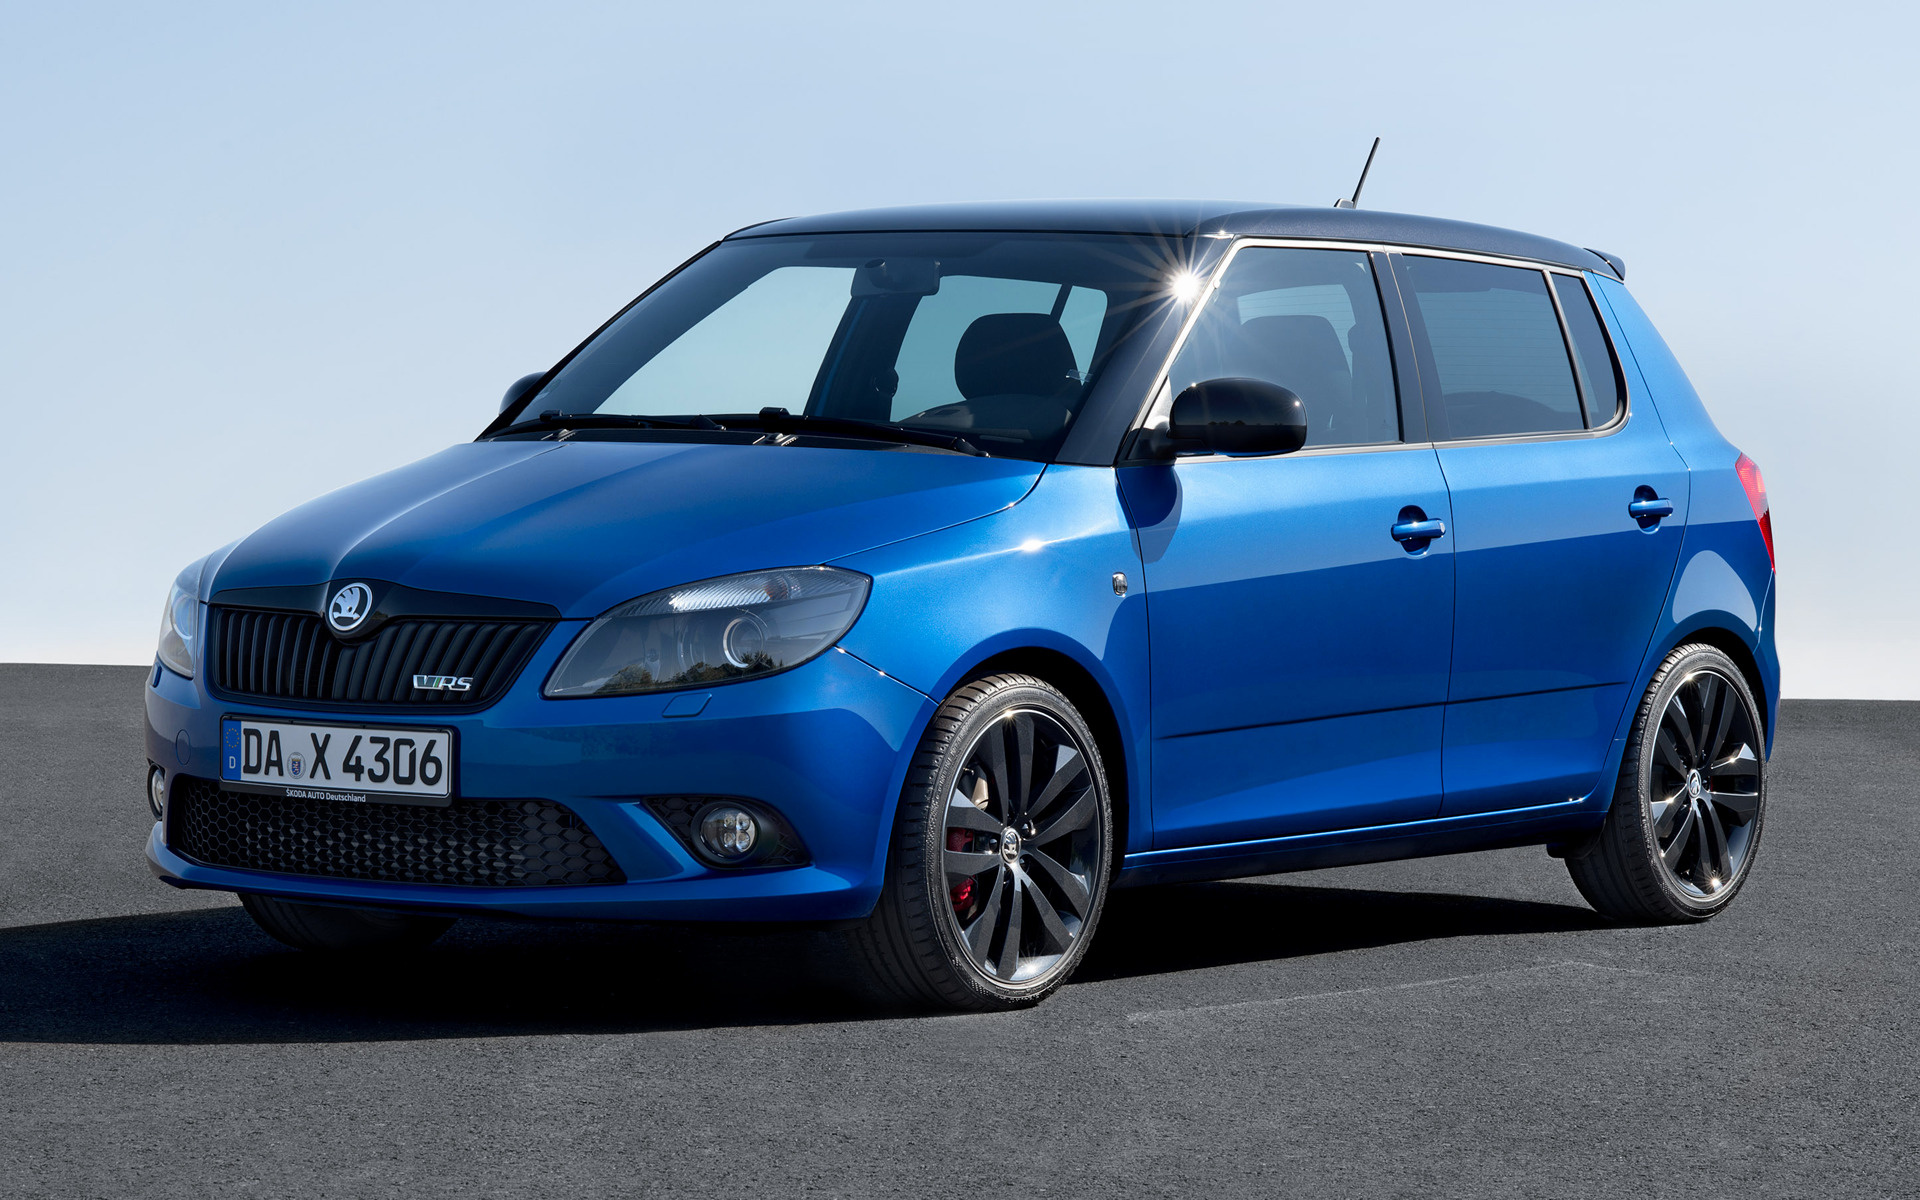 2010 skoda fabia rs wallpapers and hd images car pixel. Black Bedroom Furniture Sets. Home Design Ideas